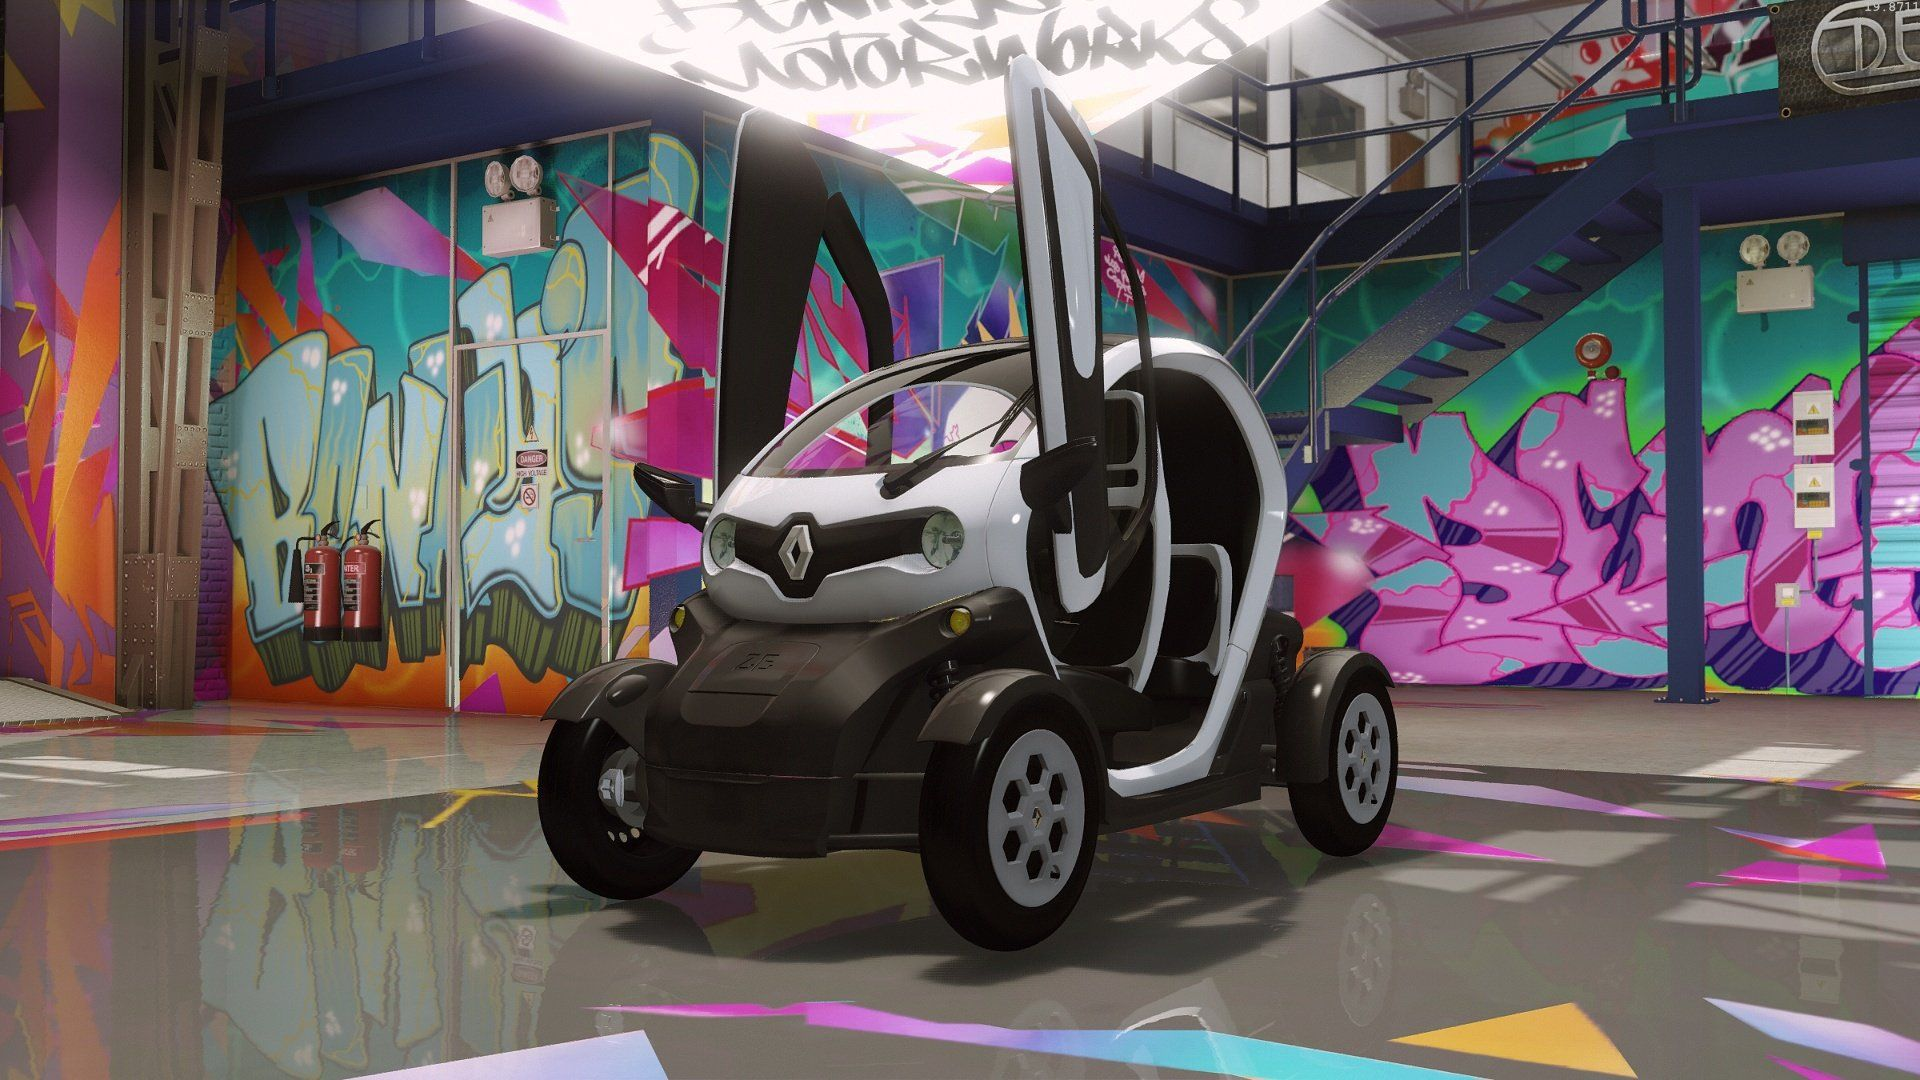 renault twizy de 2012 convertie pour gta 5 tuning f1. Black Bedroom Furniture Sets. Home Design Ideas